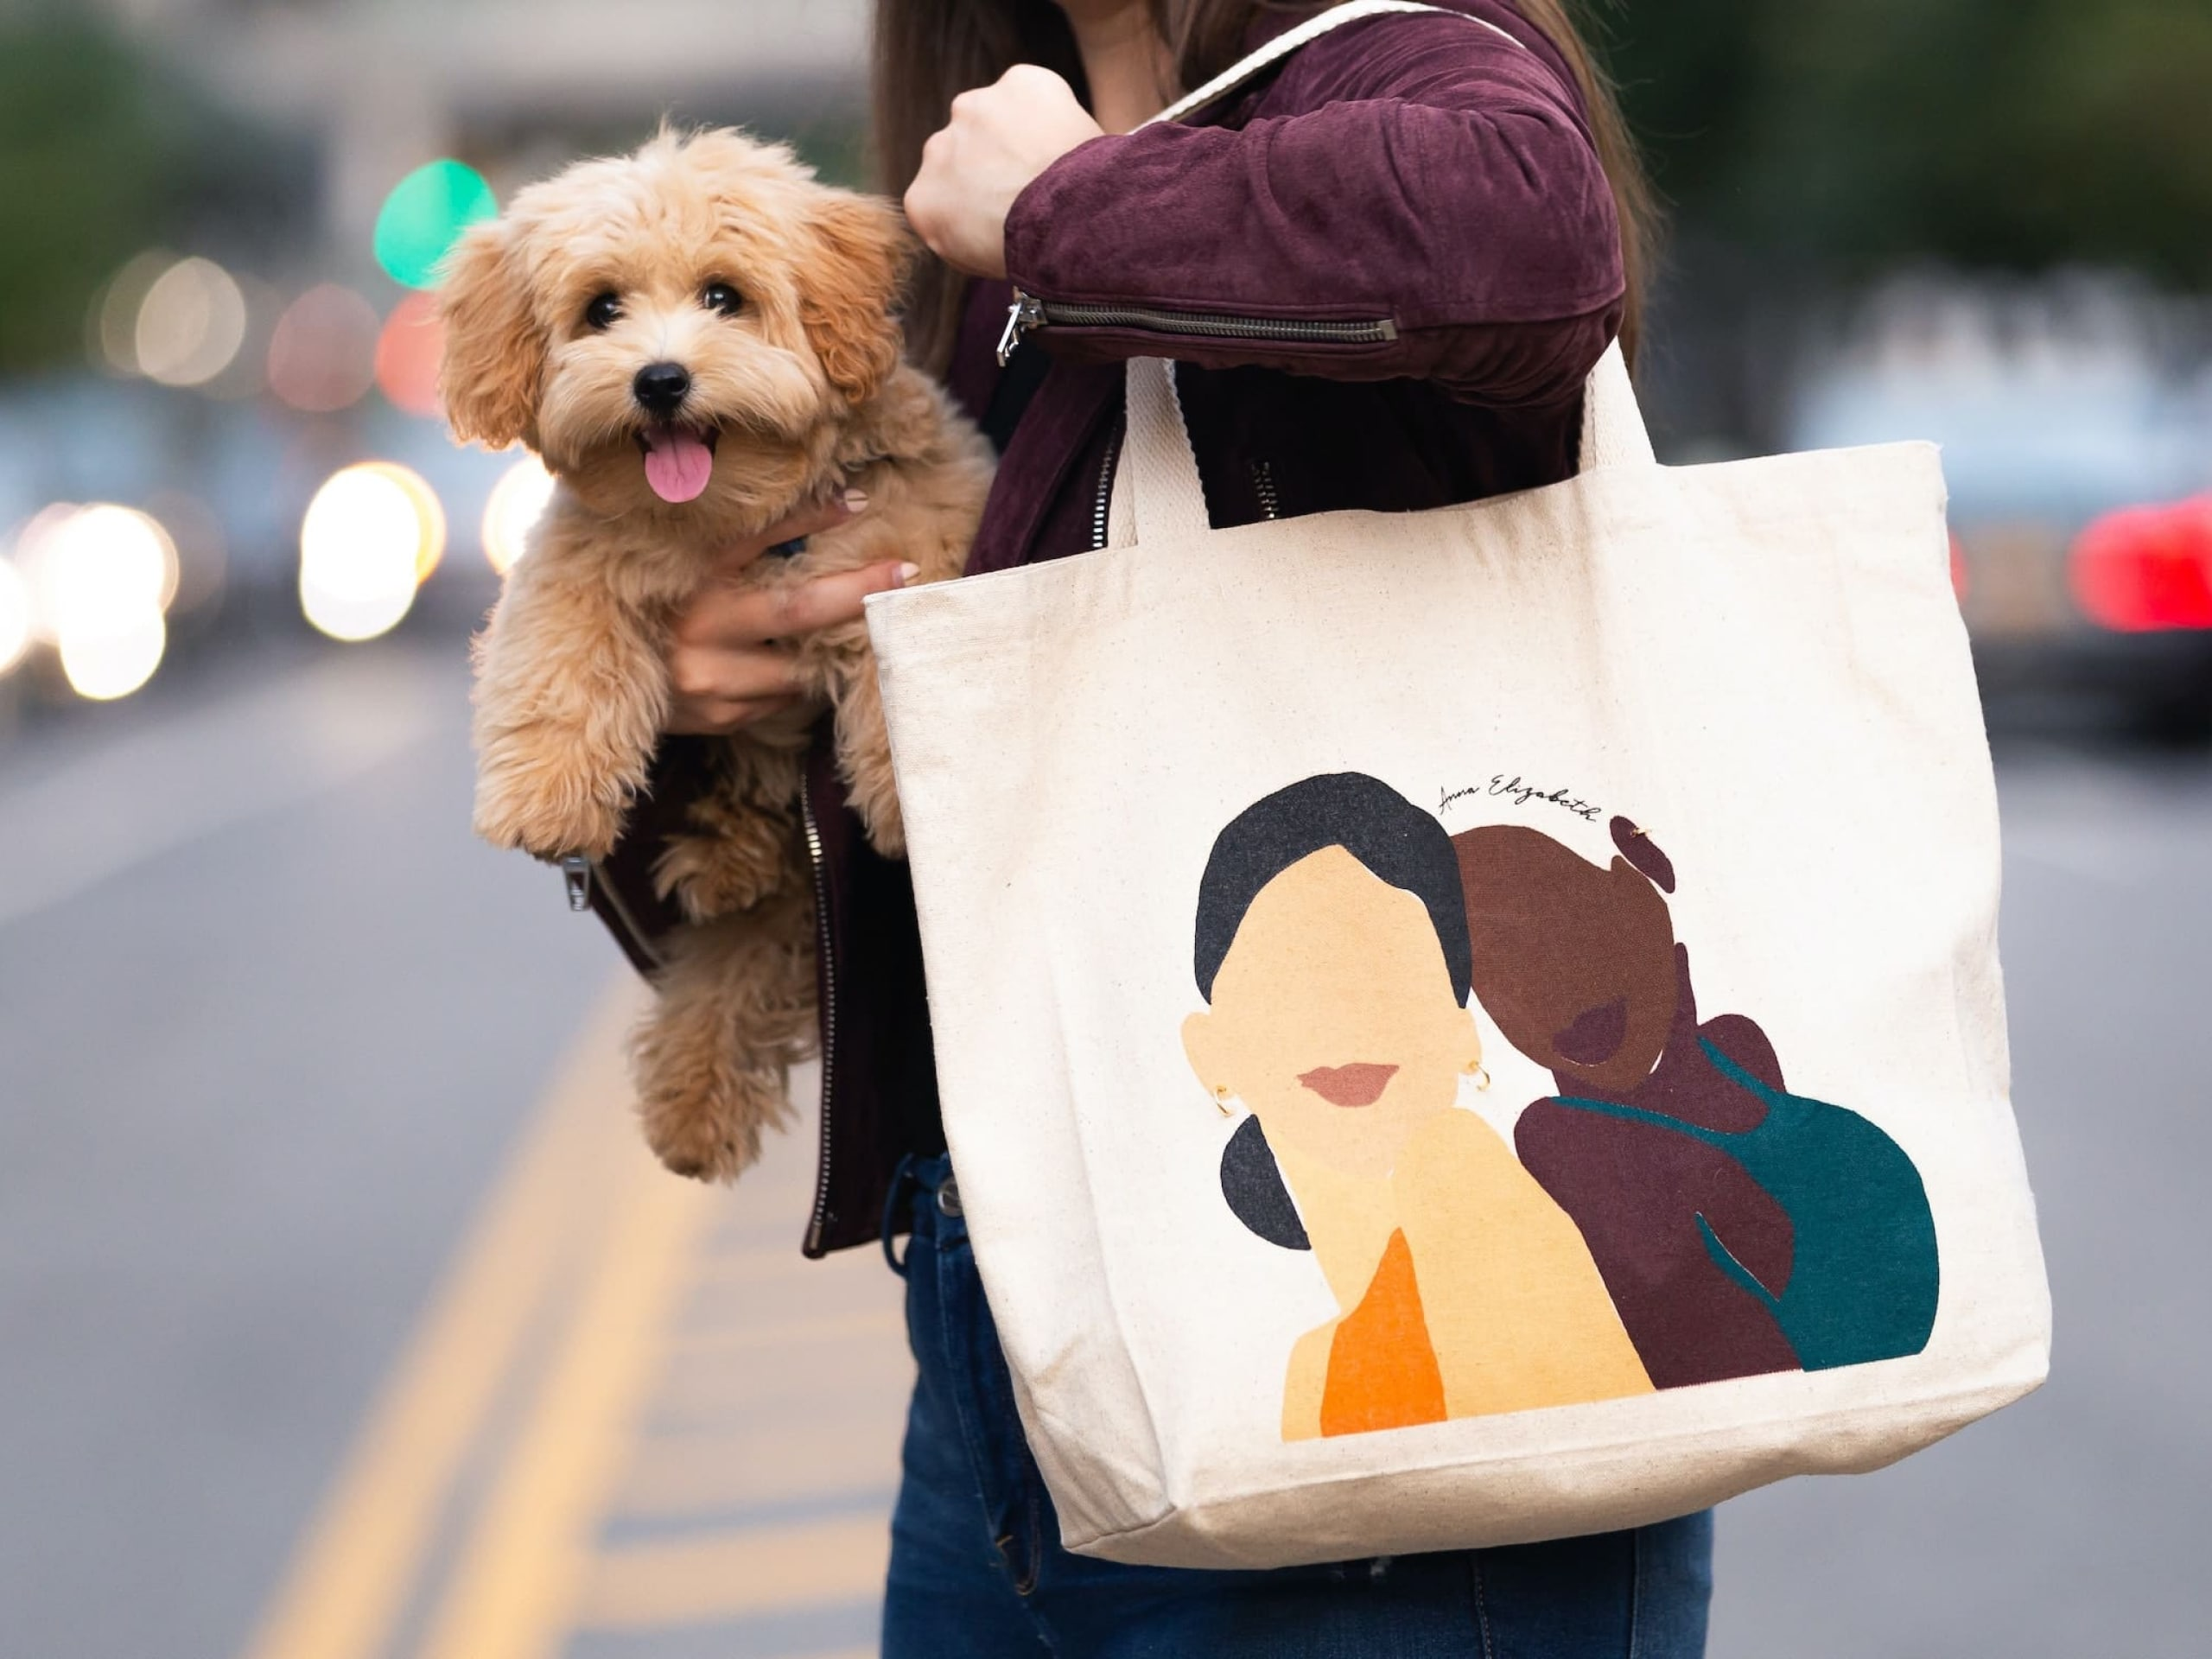 A person walking across the street with a young puppy in one hand, and a reusable bag in the other.